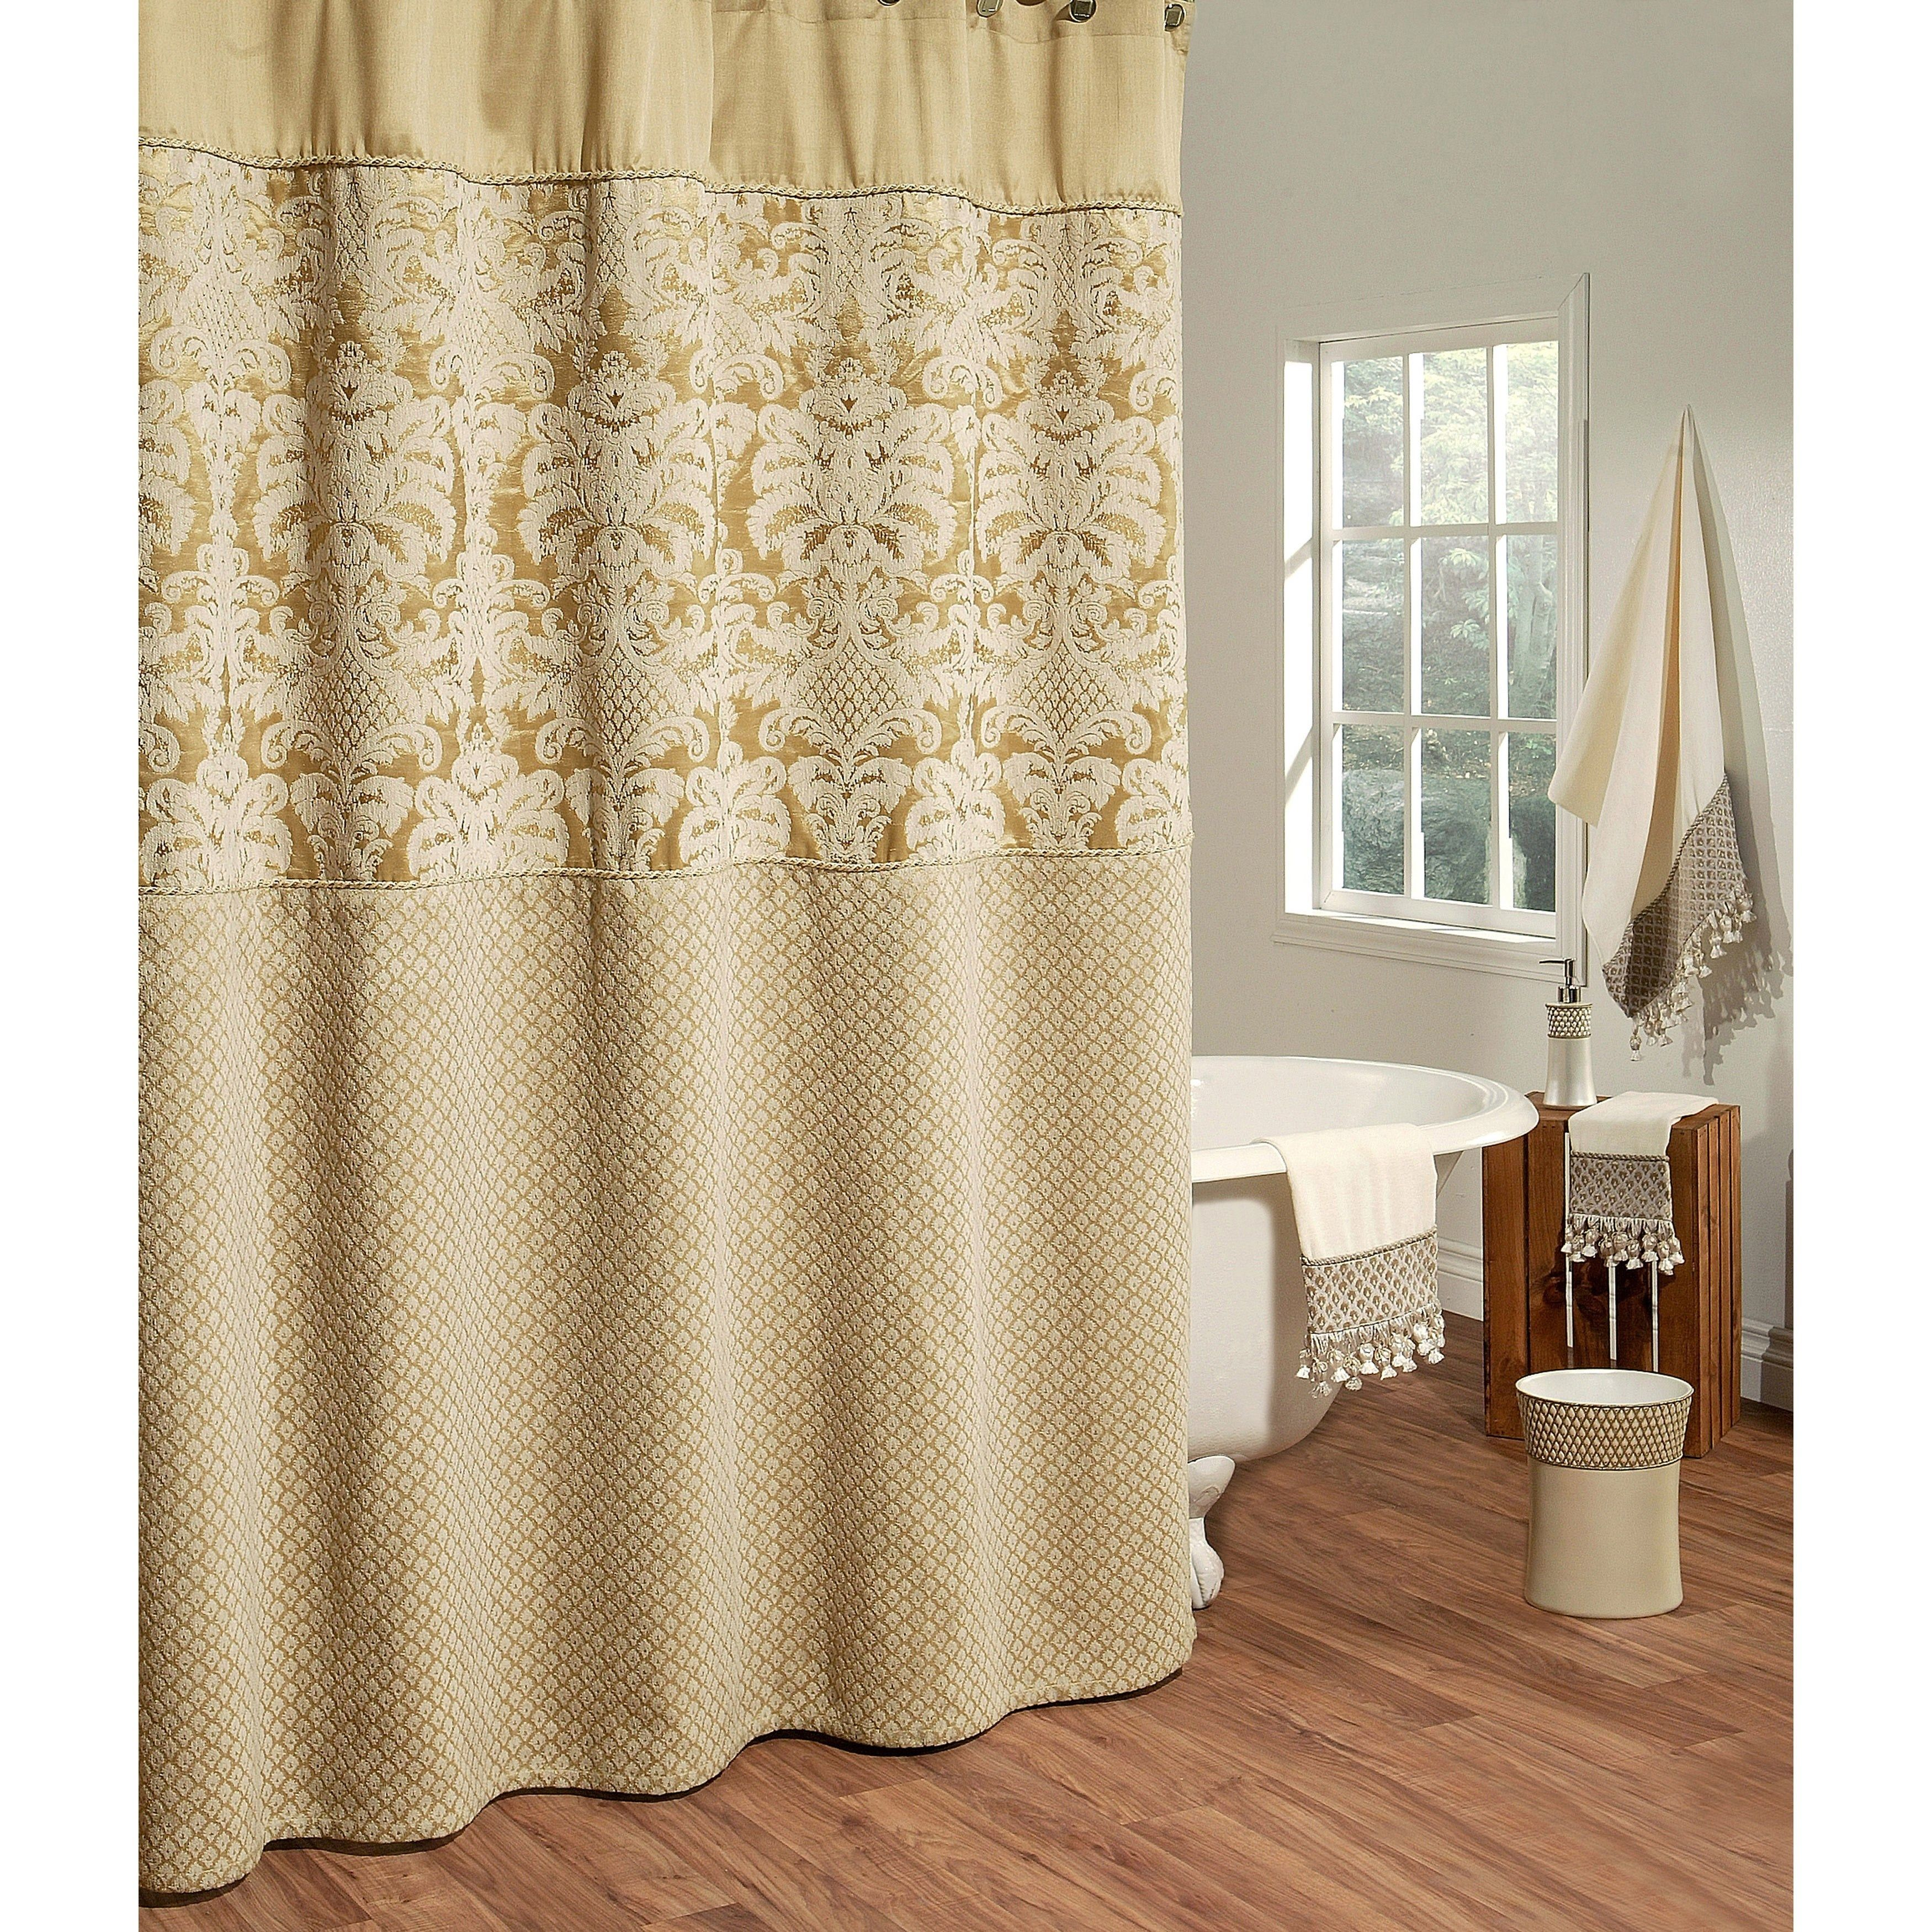 13 Awesome Tricks Of How To Craft Ivory Shower Curtain When You Re